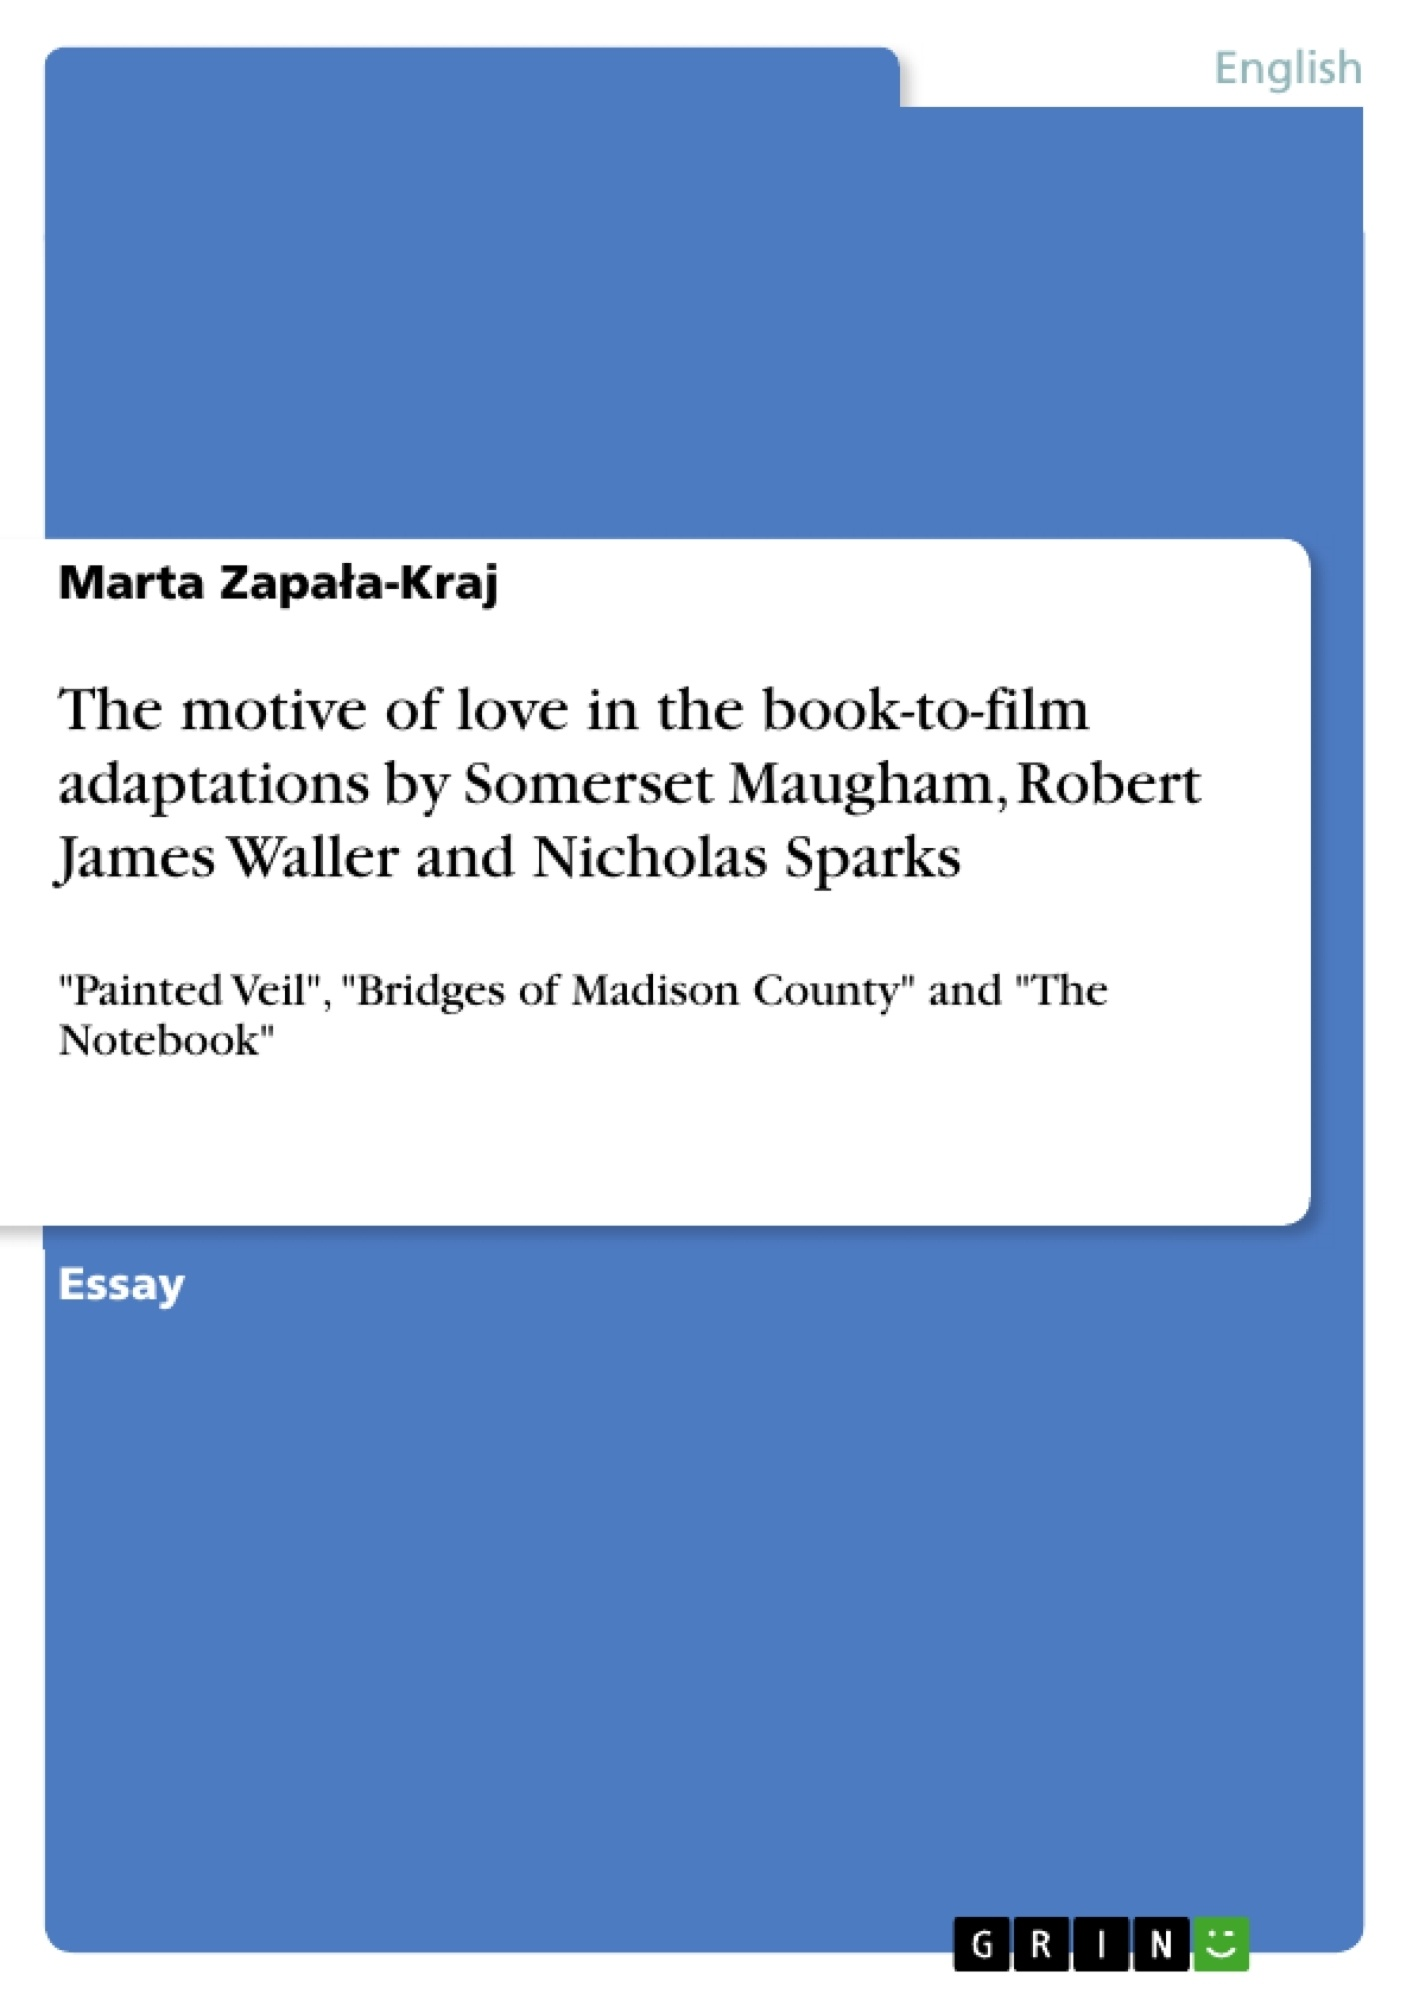 Title: The motive of love in the book-to-film adaptations by Somerset Maugham, Robert James Waller and Nicholas Sparks